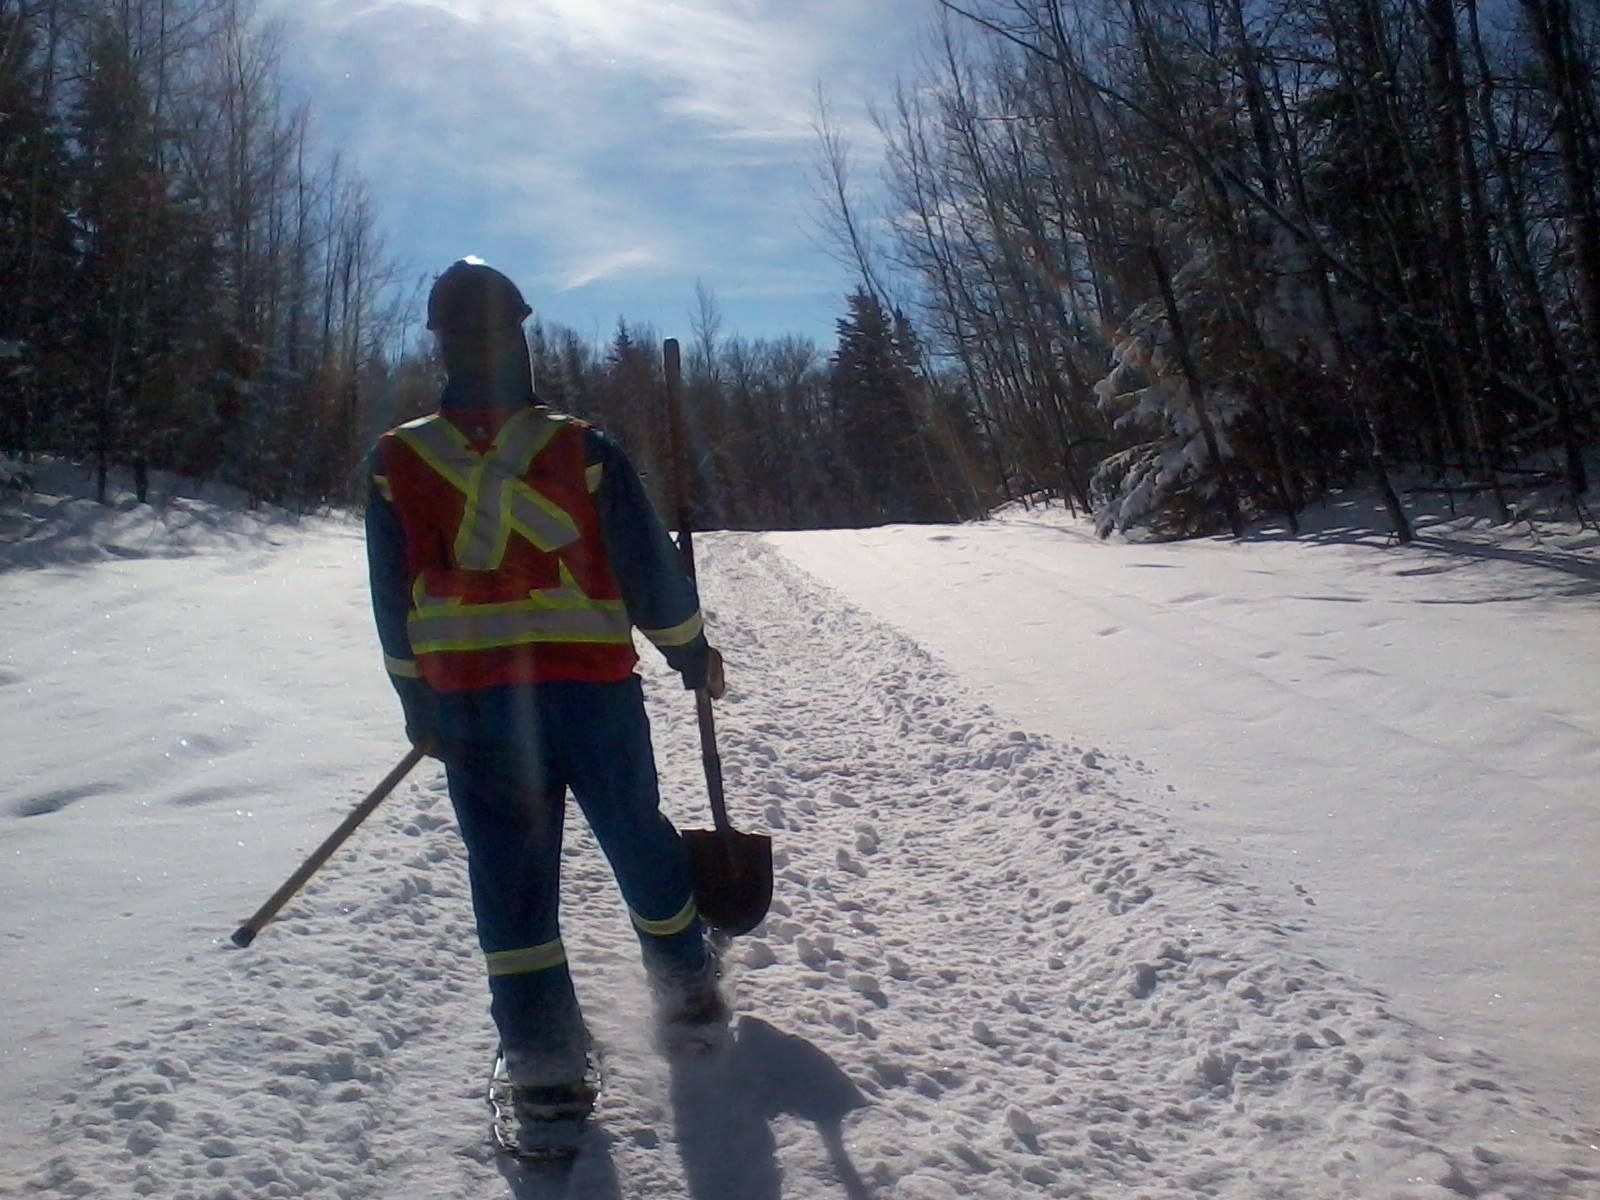 Working in snowshoes